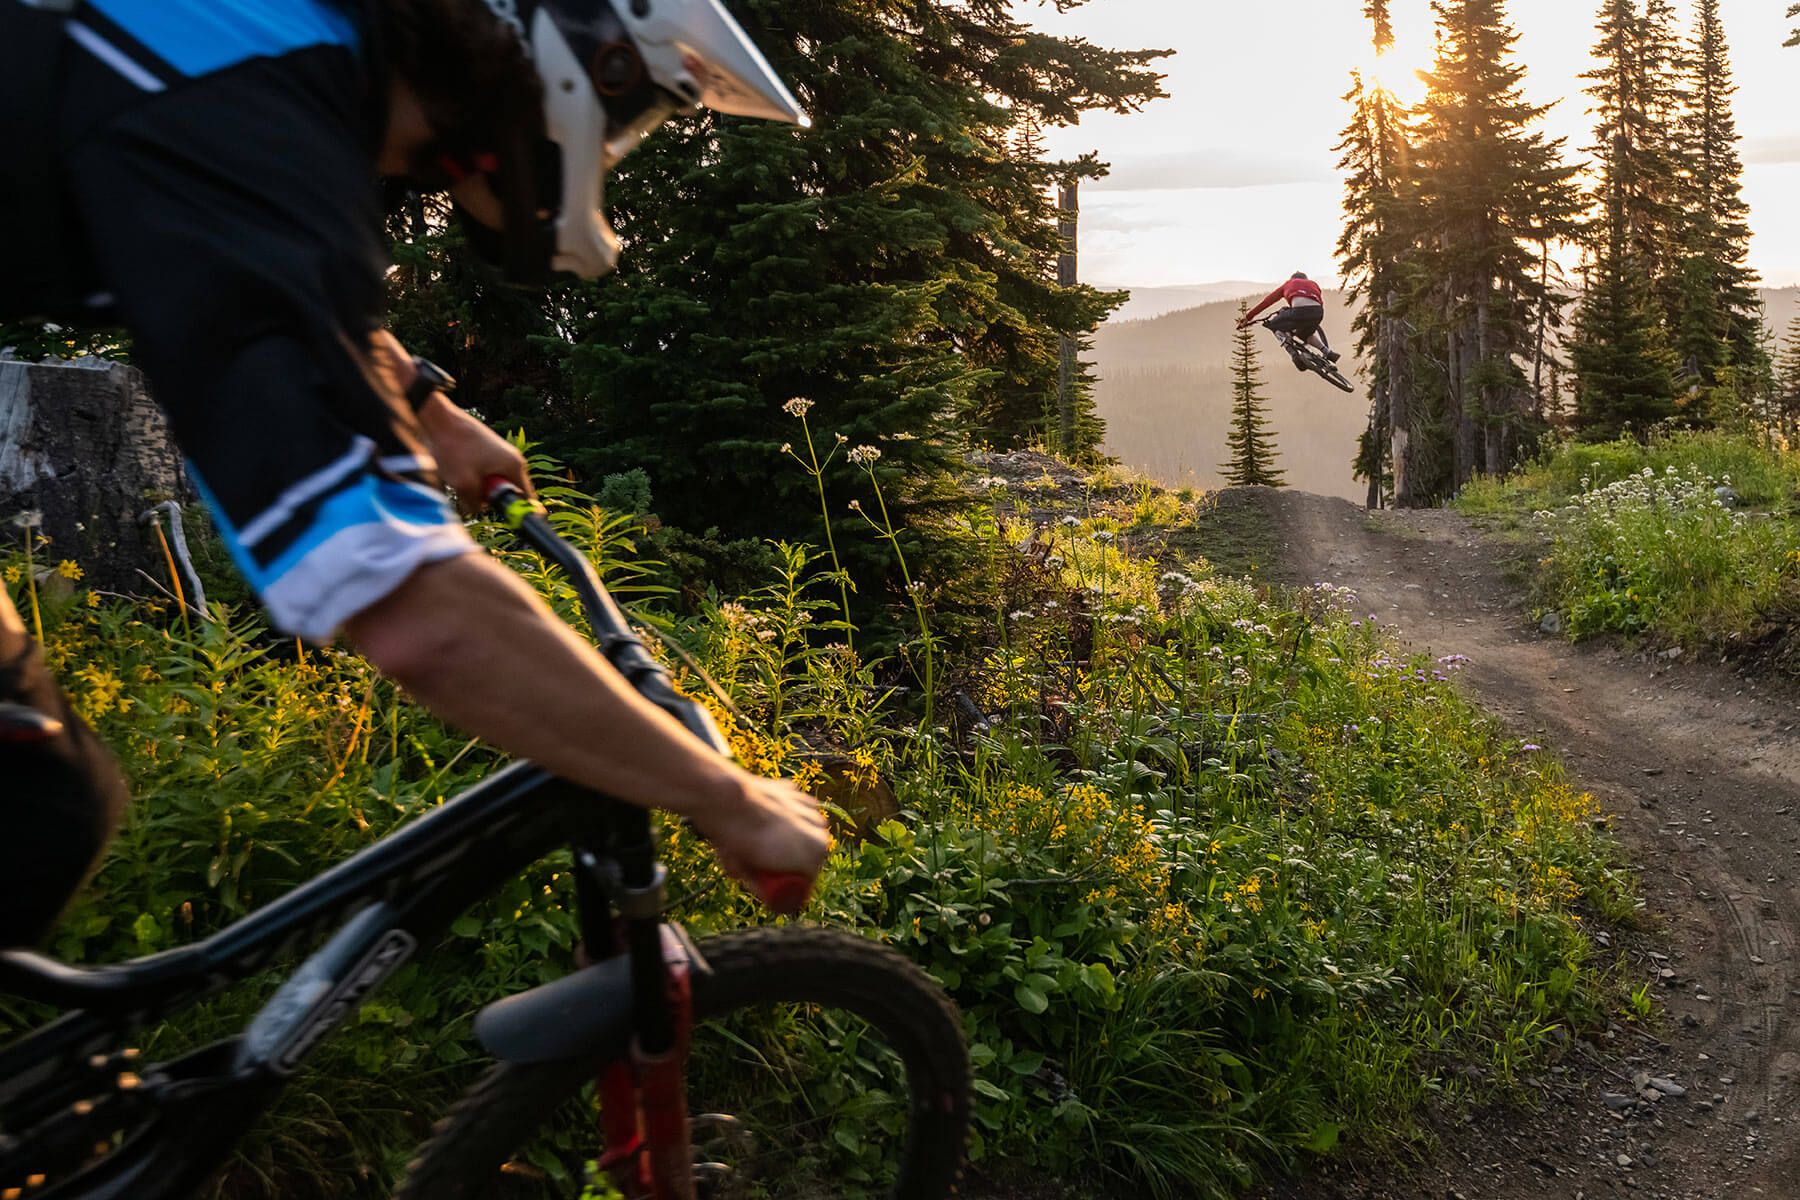 The Bike Park at Sun Peaks Resort